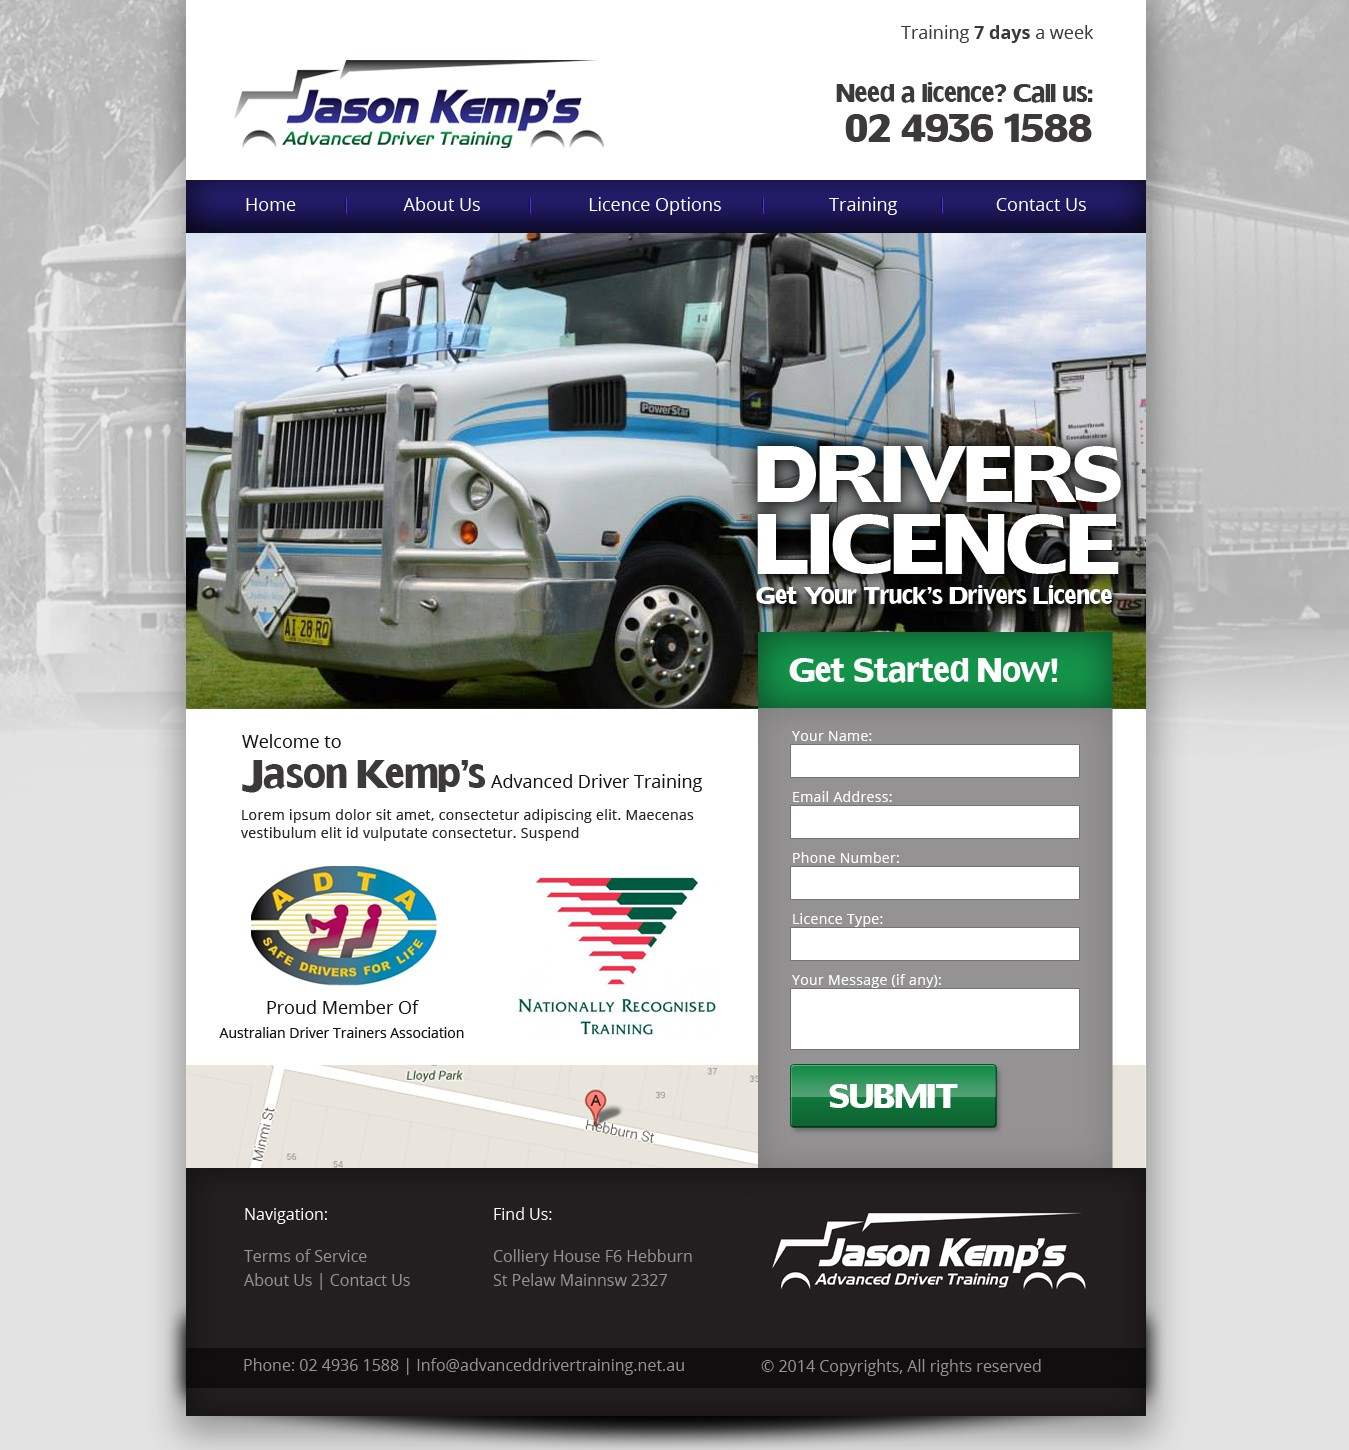 create the new website for Jason Kemp's Advanced Driver Training